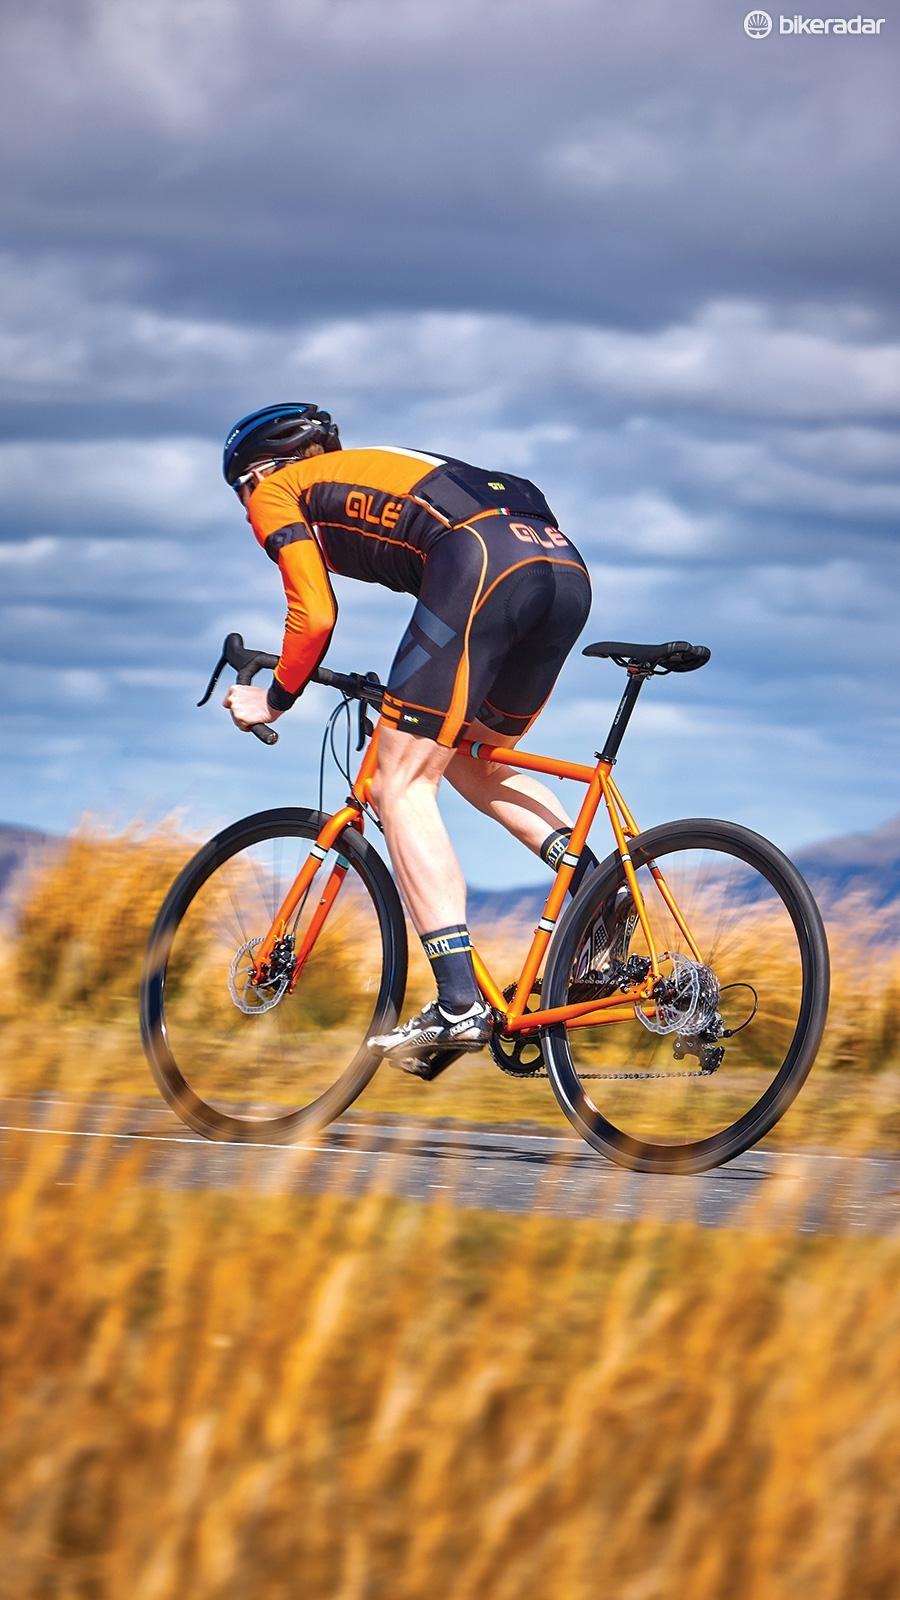 Frame flex for off-road stability and comfort means the Robinson can get a bit bendy when it comes to road sprints